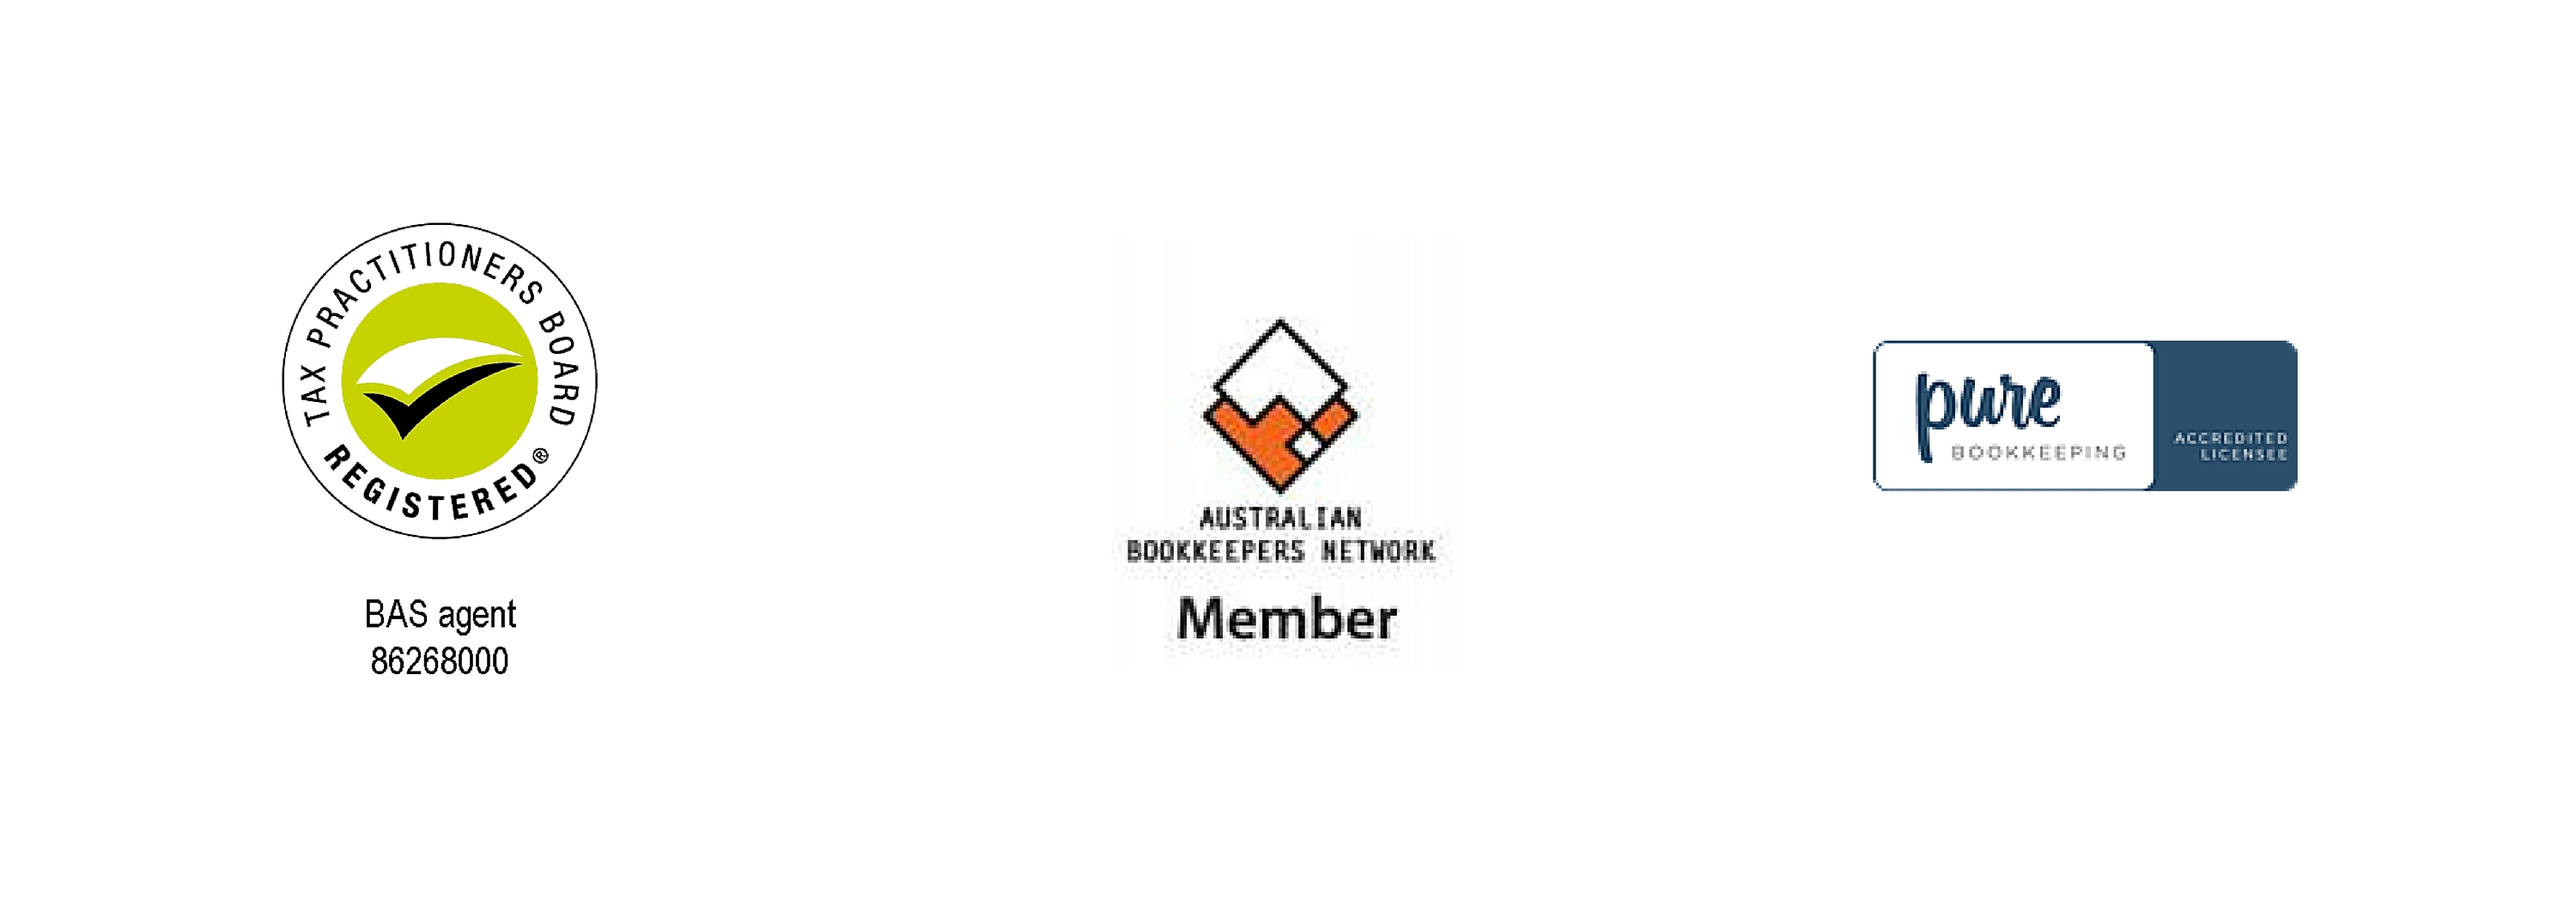 BAS agent licence, ABN member, Pure bookkeeping